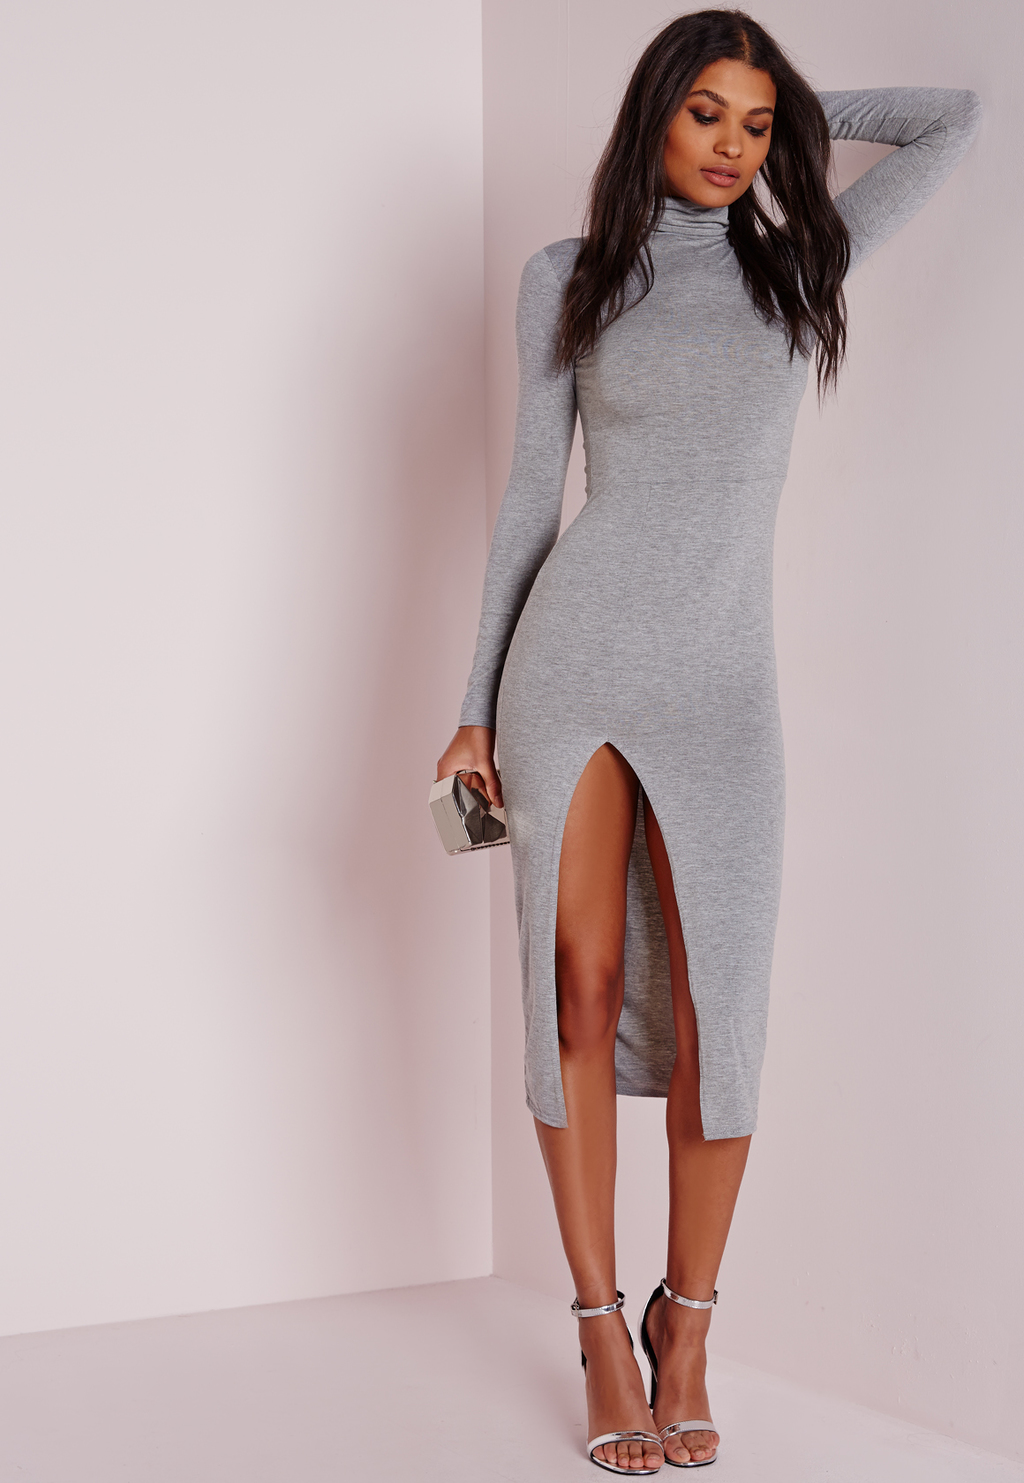 Jersey High Neck Extreme Split Midi Dress Grey, Grey - length: below the knee; fit: tight; pattern: plain; neckline: high neck; style: bodycon; predominant colour: light grey; occasions: evening; fibres: viscose/rayon - stretch; hip detail: slits at hip; sleeve length: long sleeve; sleeve style: standard; texture group: jersey - clingy; pattern type: fabric; season: a/w 2015